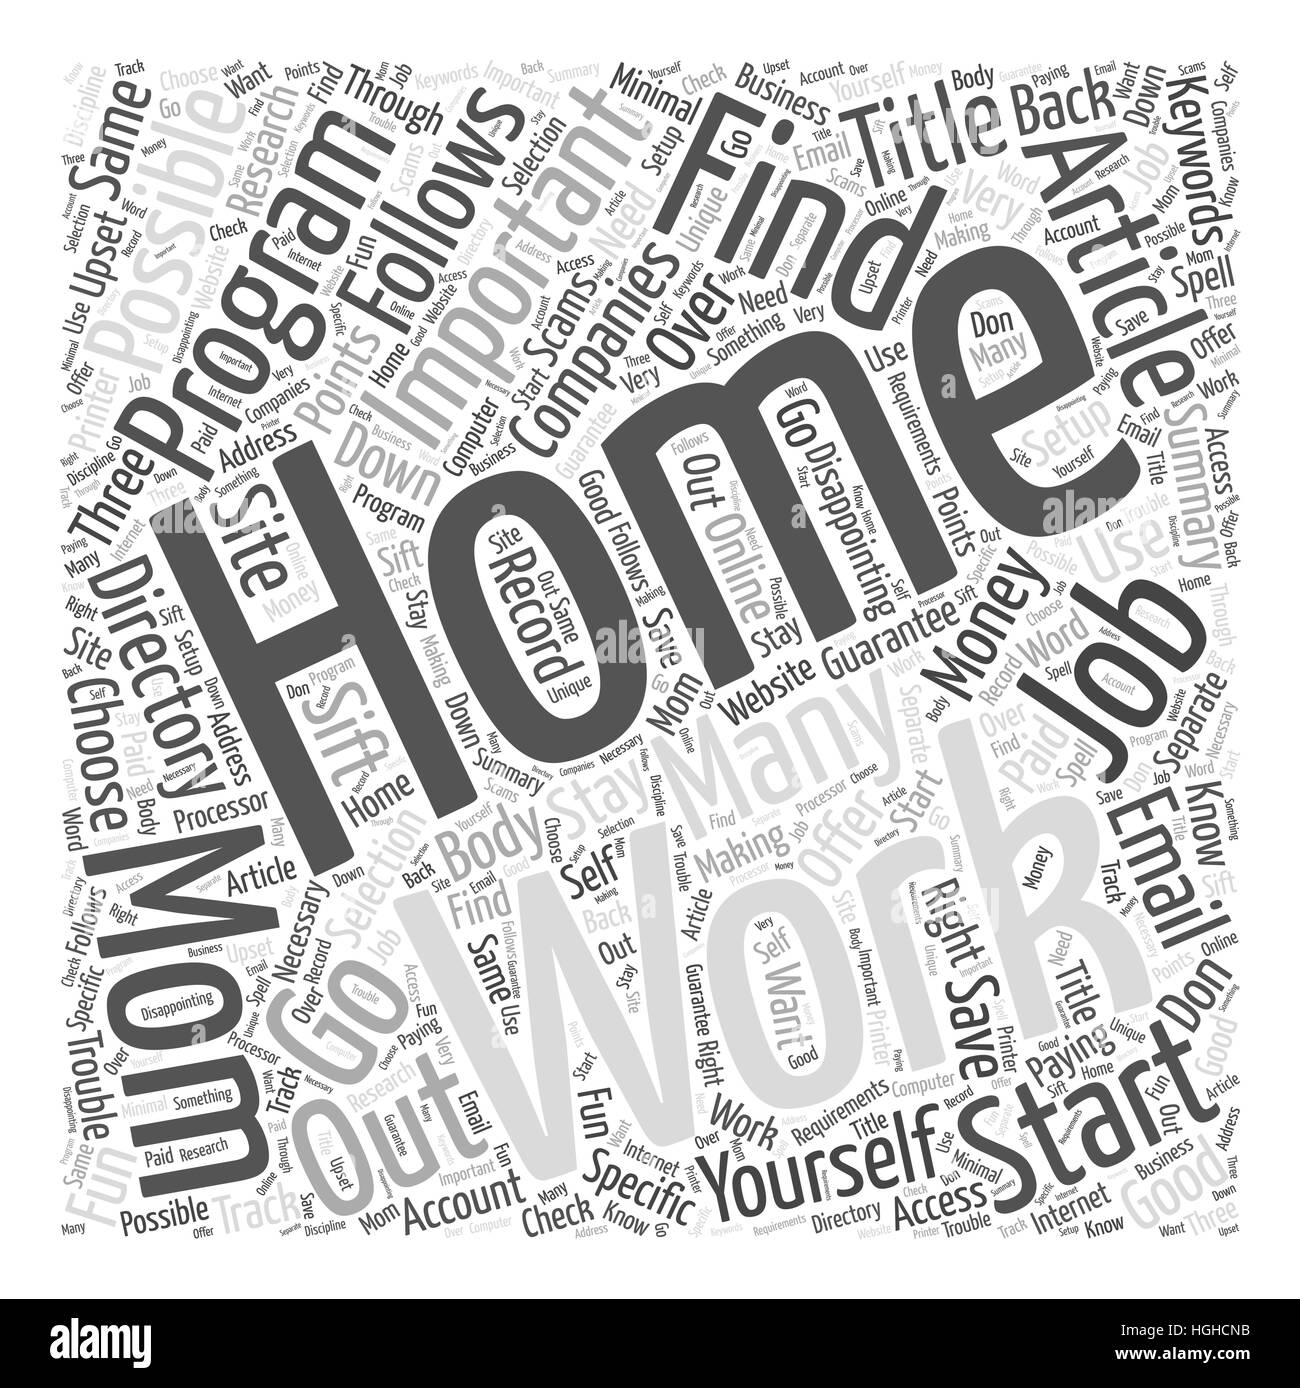 work home moms word cloud stock photos work home moms word cloud rh alamy com work from home moms no fees stay at home moms work harder